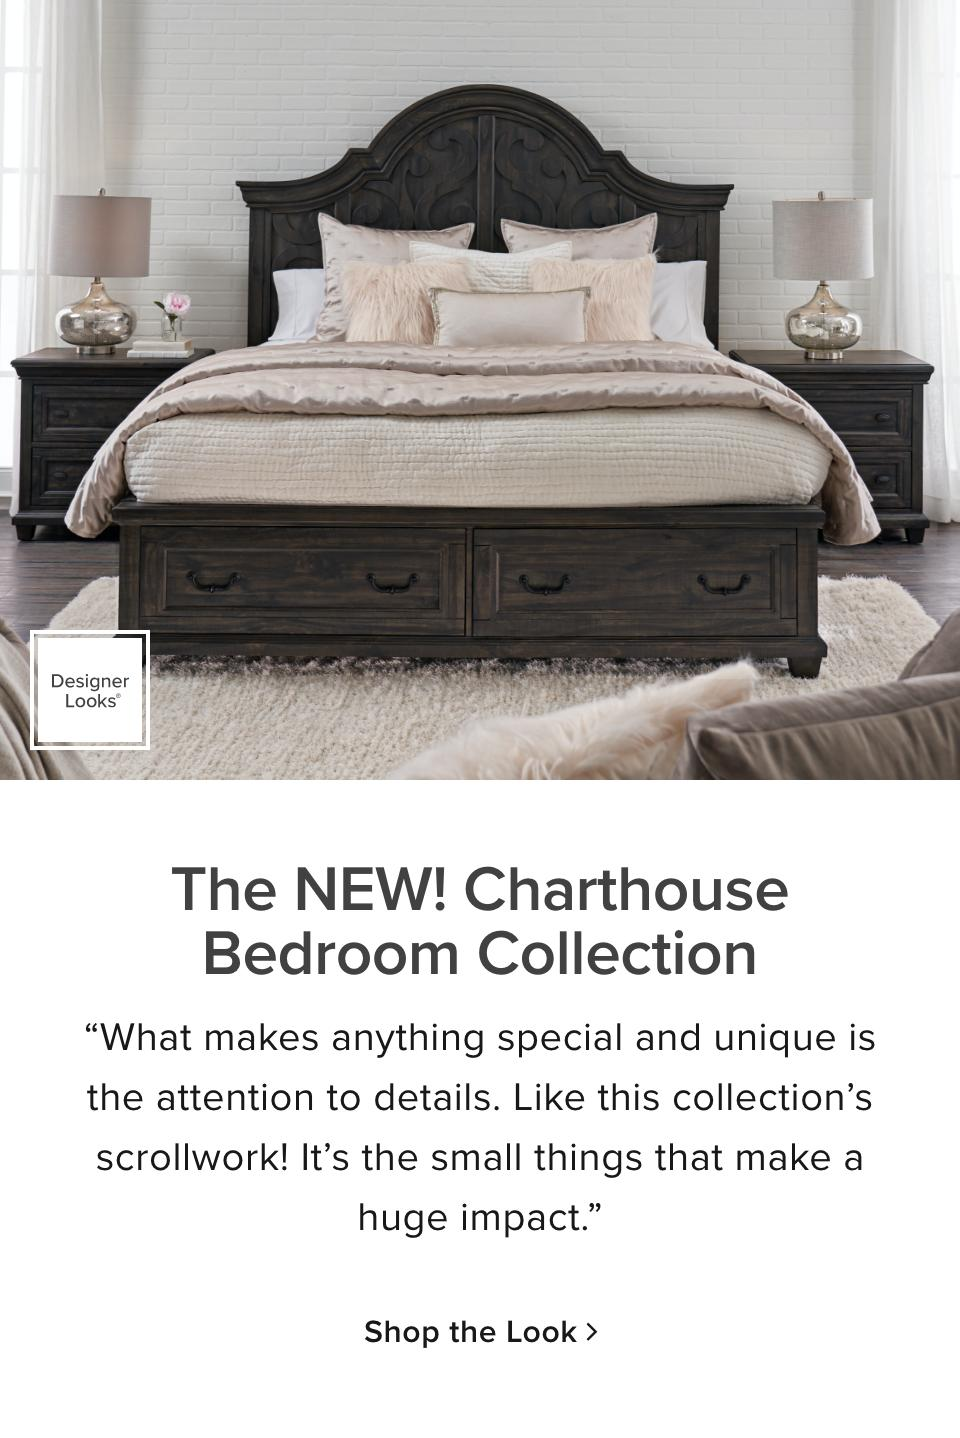 Art Van Bedroom Sets Clearance : bedroom, clearance, Charthouse, Bedroom, Collection, Designer, Looks